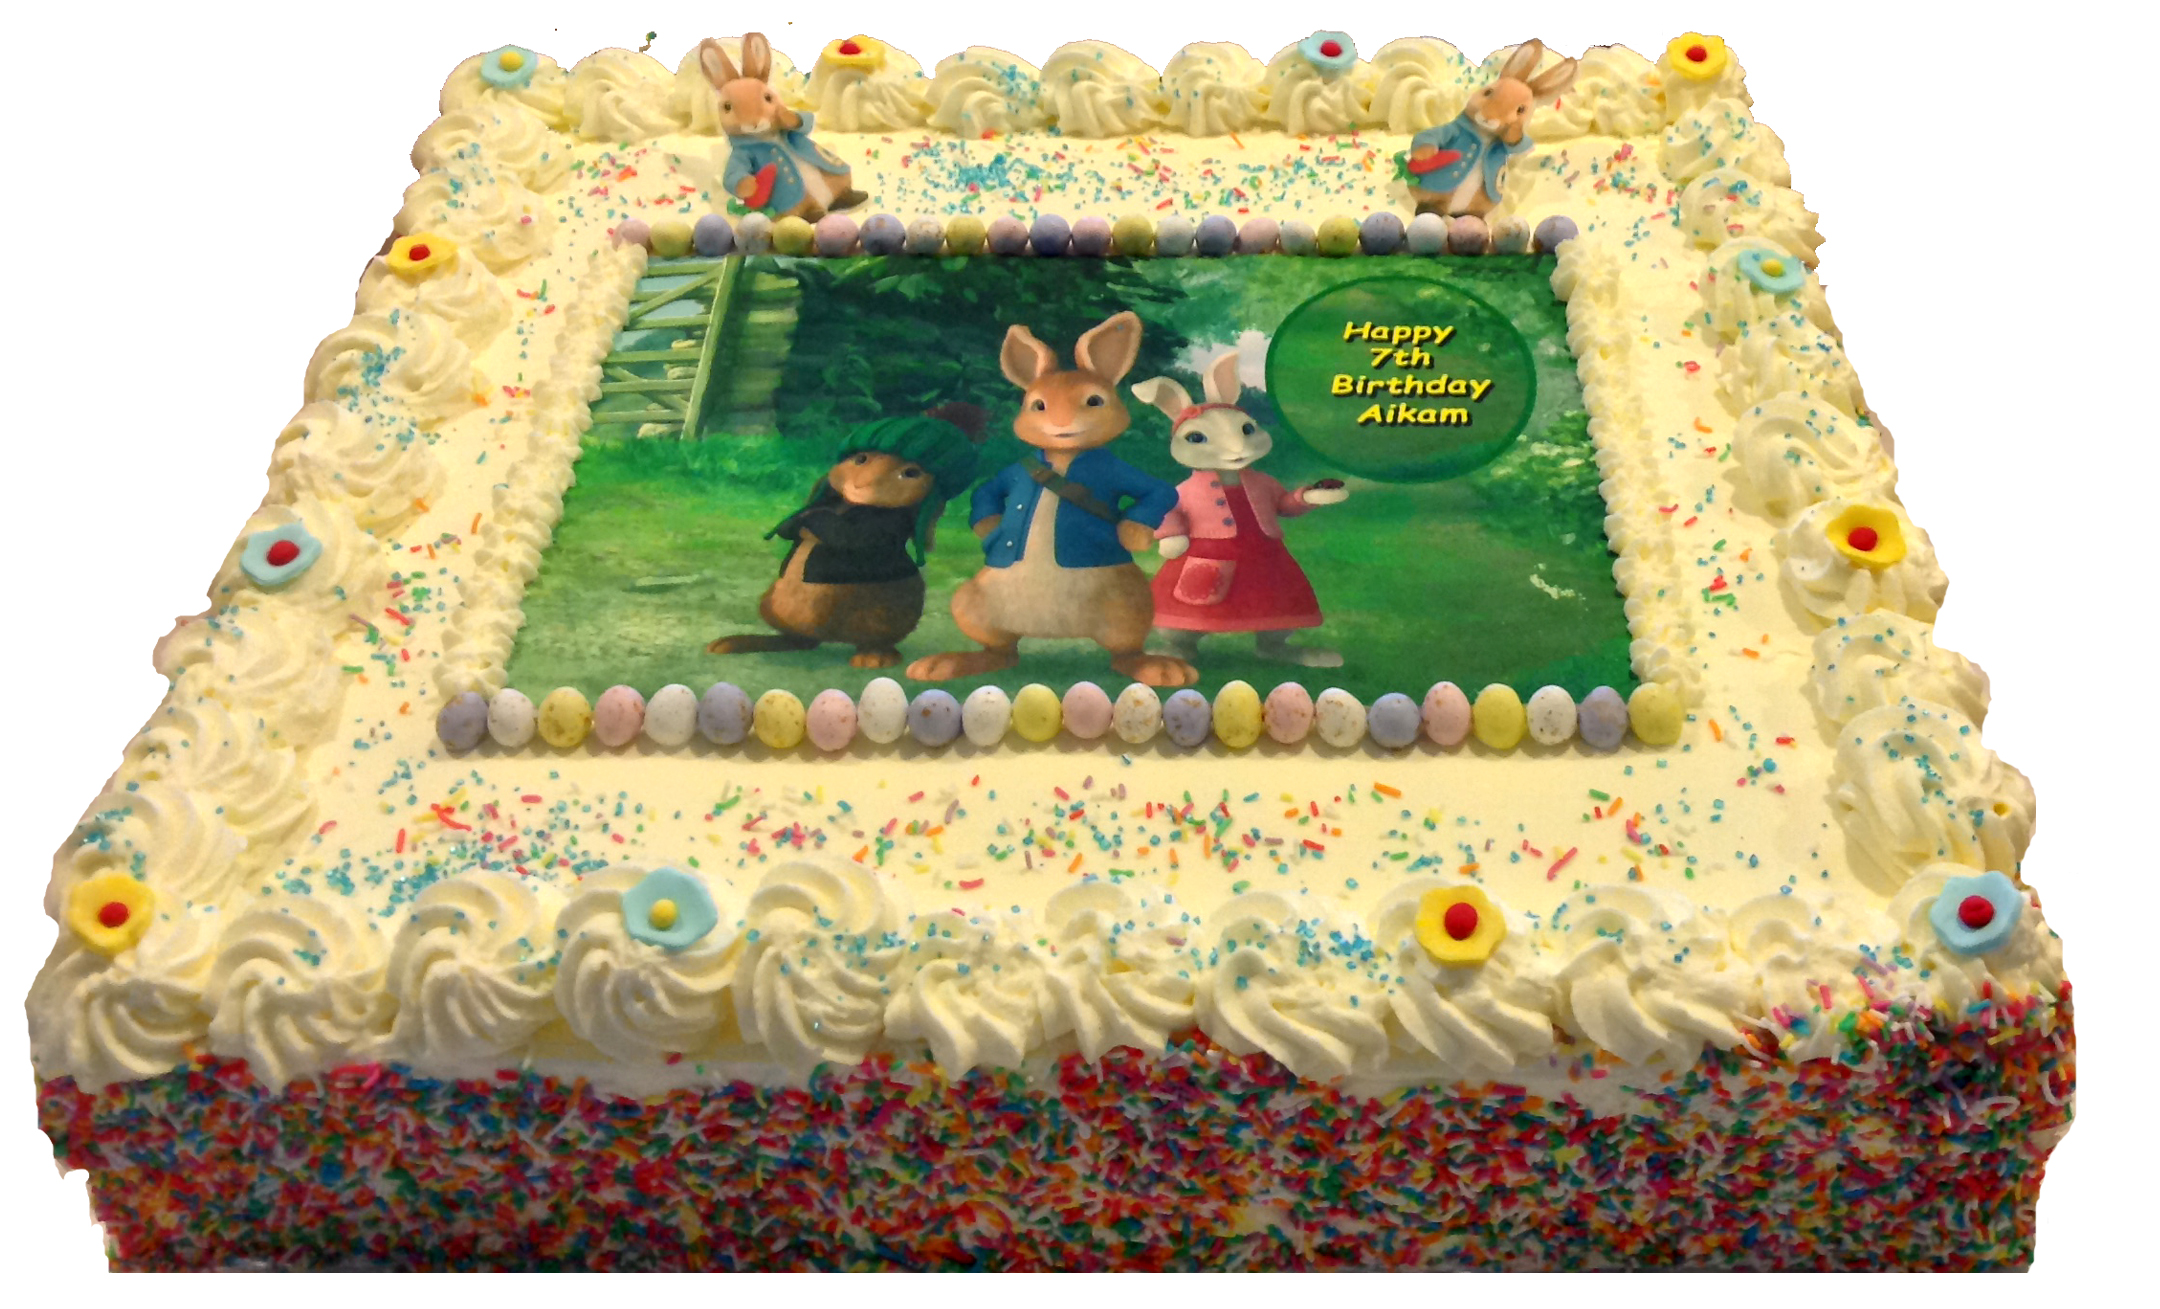 Peter Rabbit at French Haven Patisserie - Bakery at Craigieburn Highlands